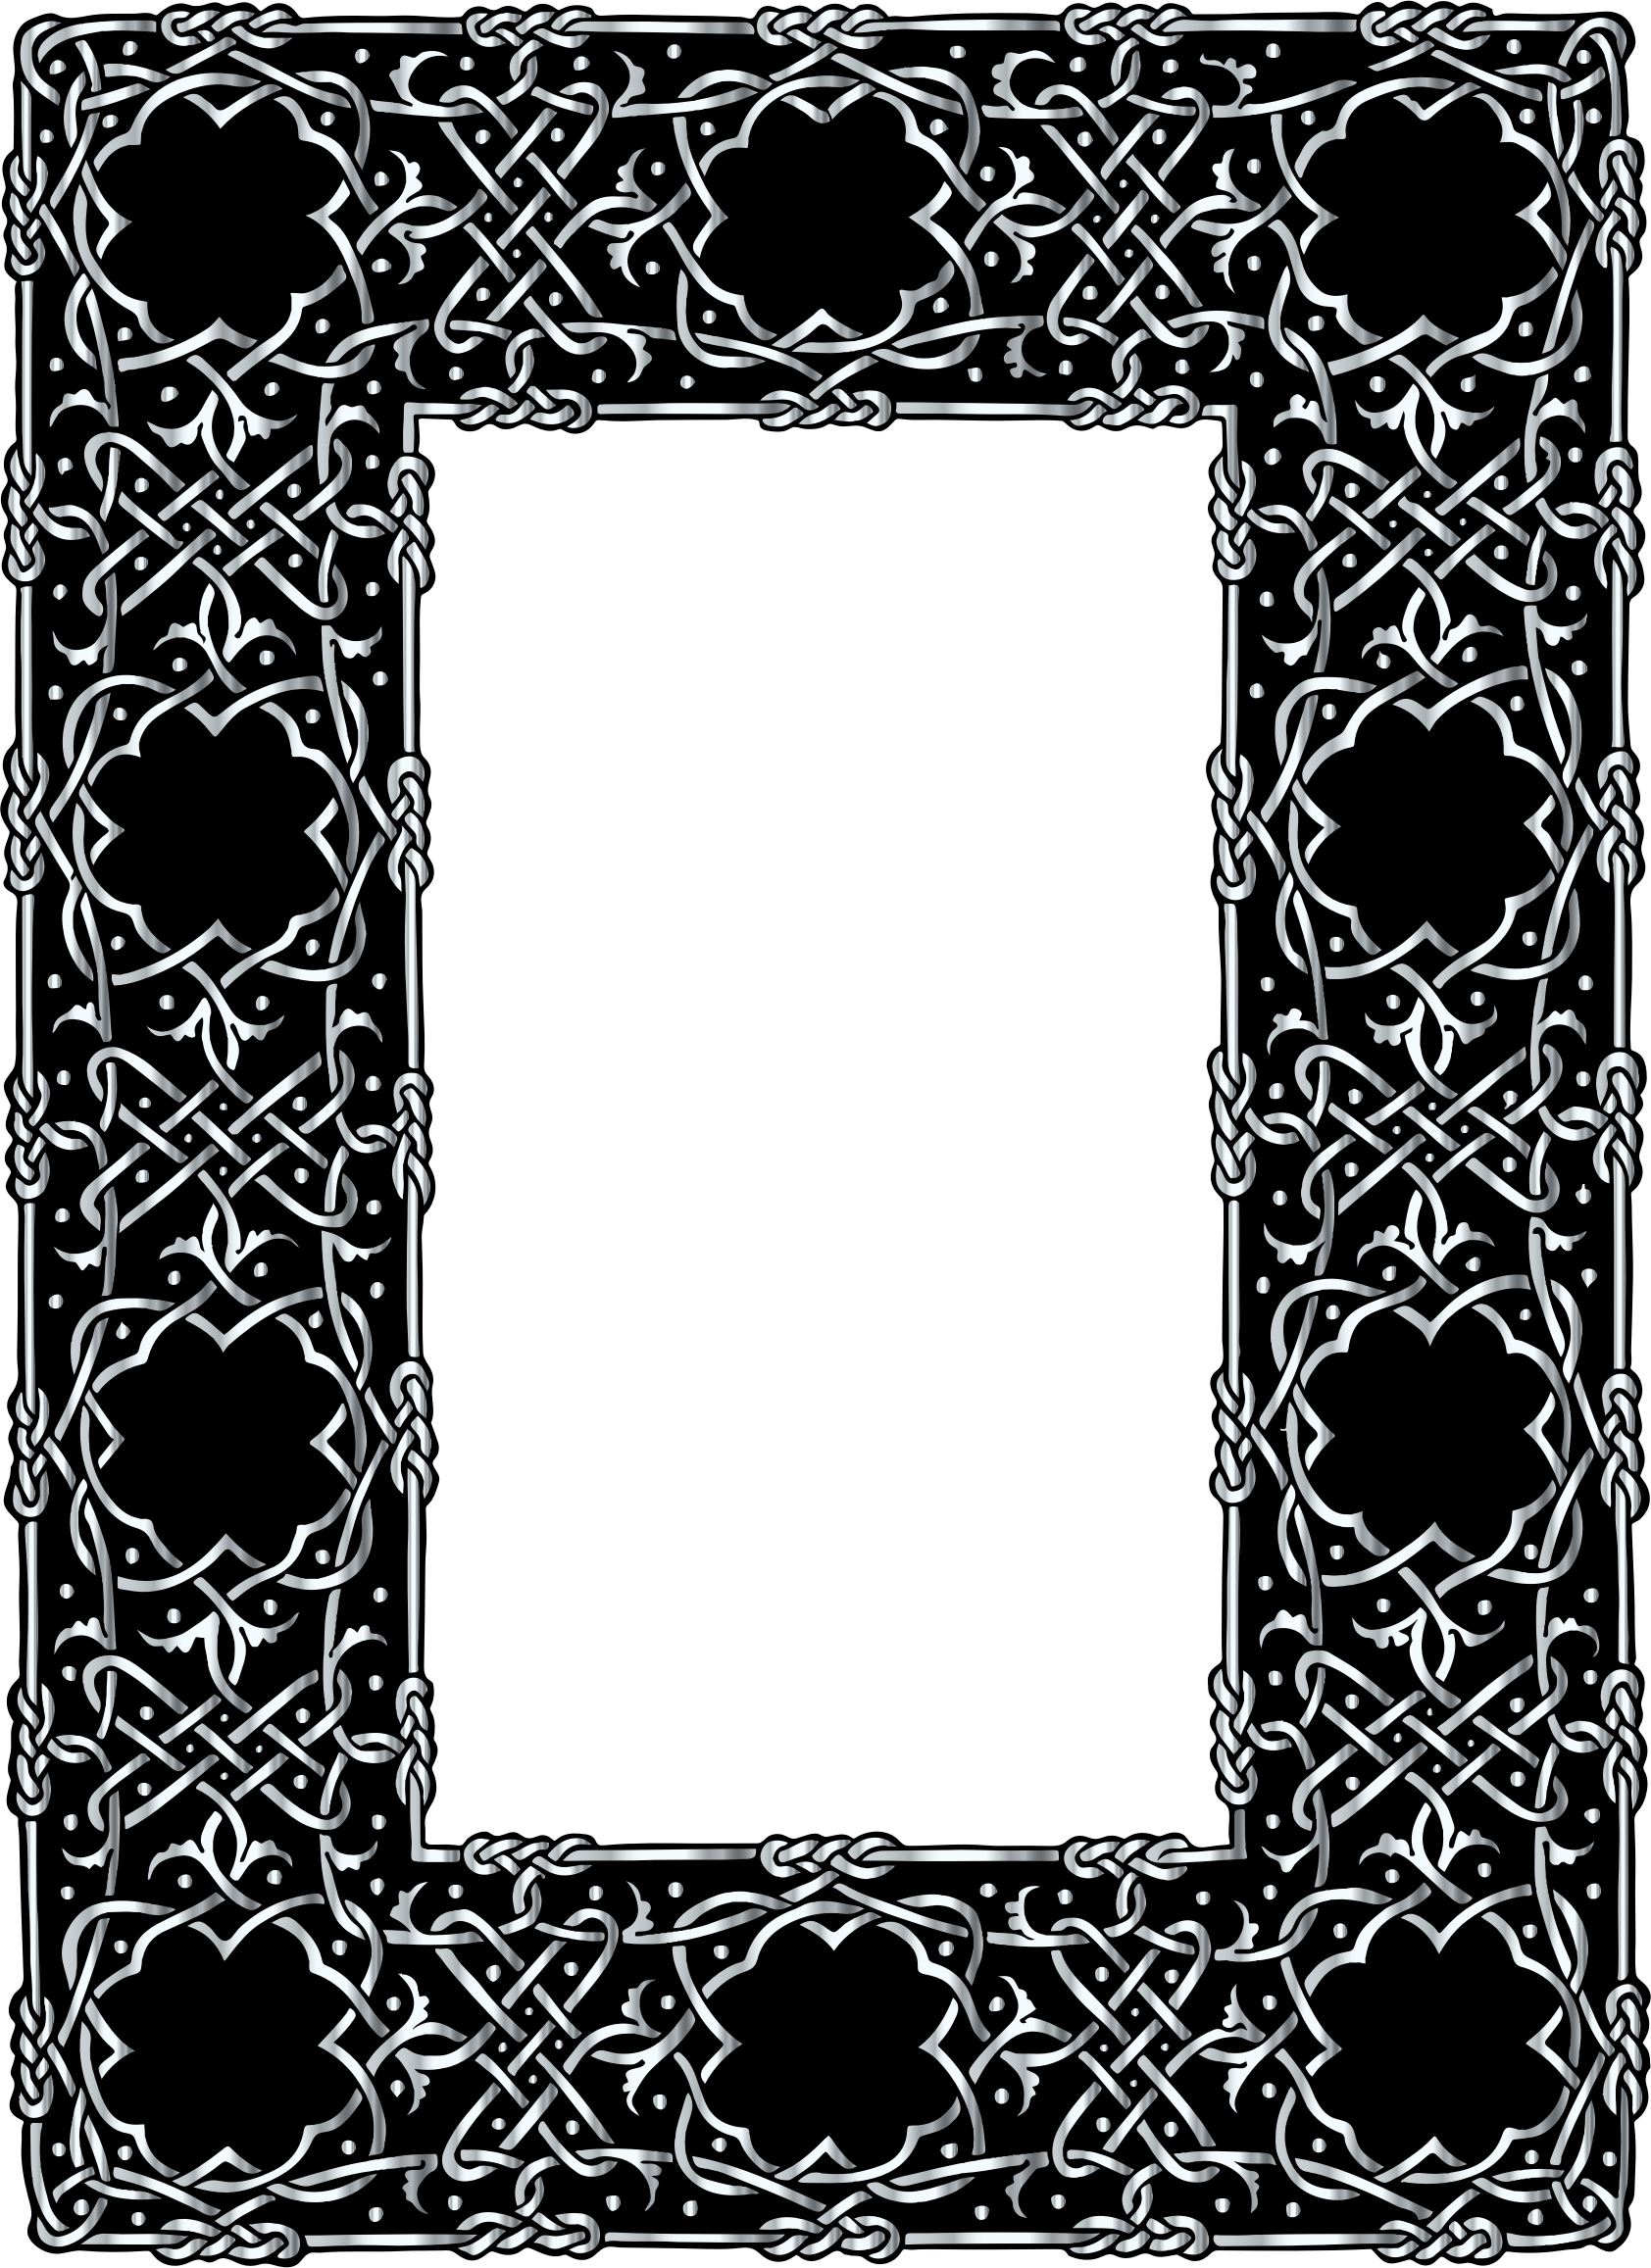 Silver Ornate Geometric Frame by GDJ